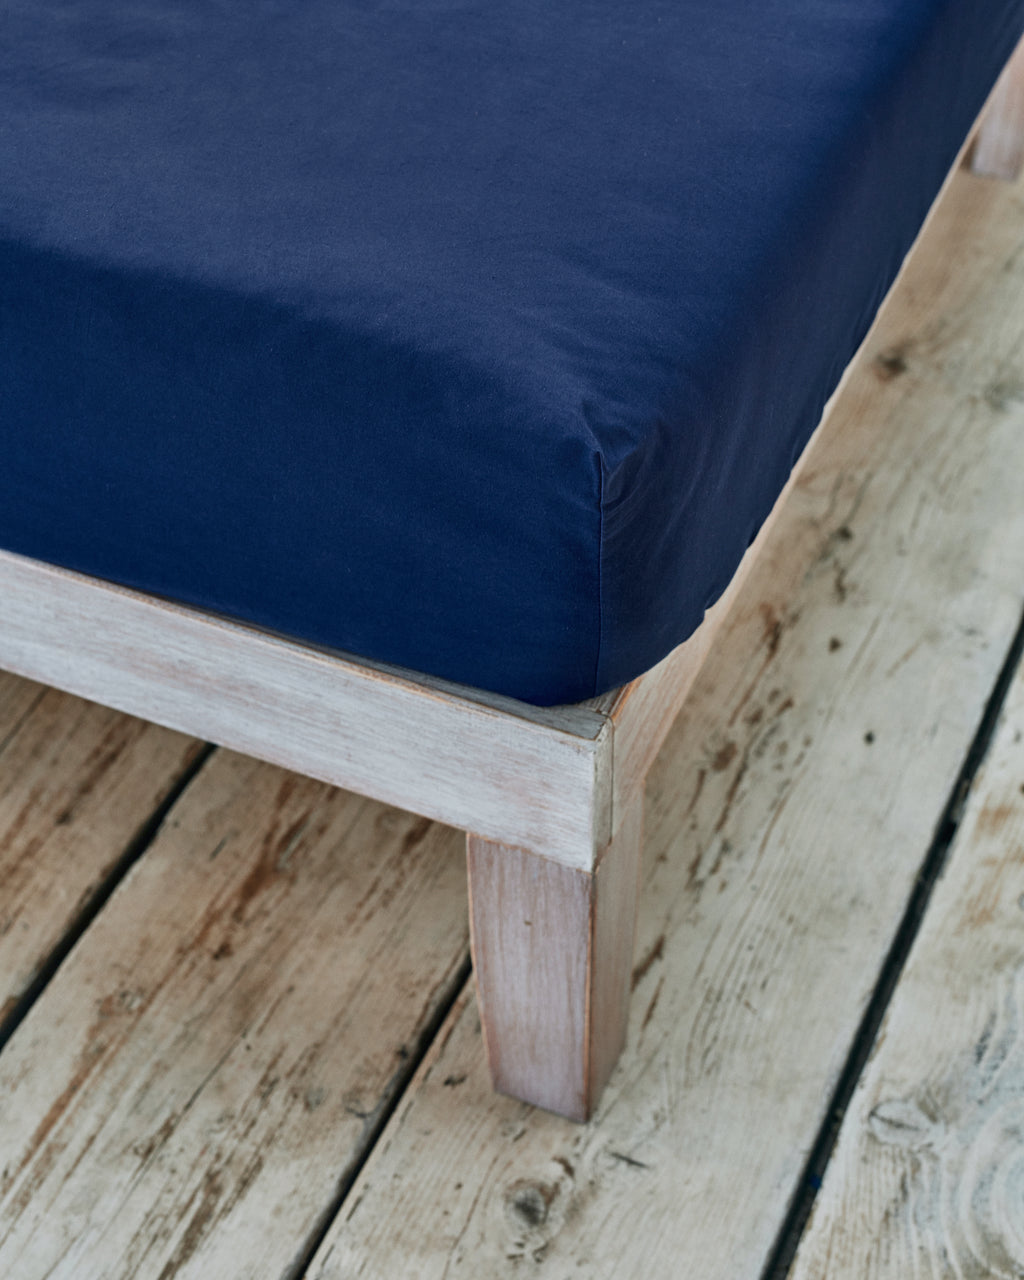 tight fitted corner of navy blue cotton bedsheet